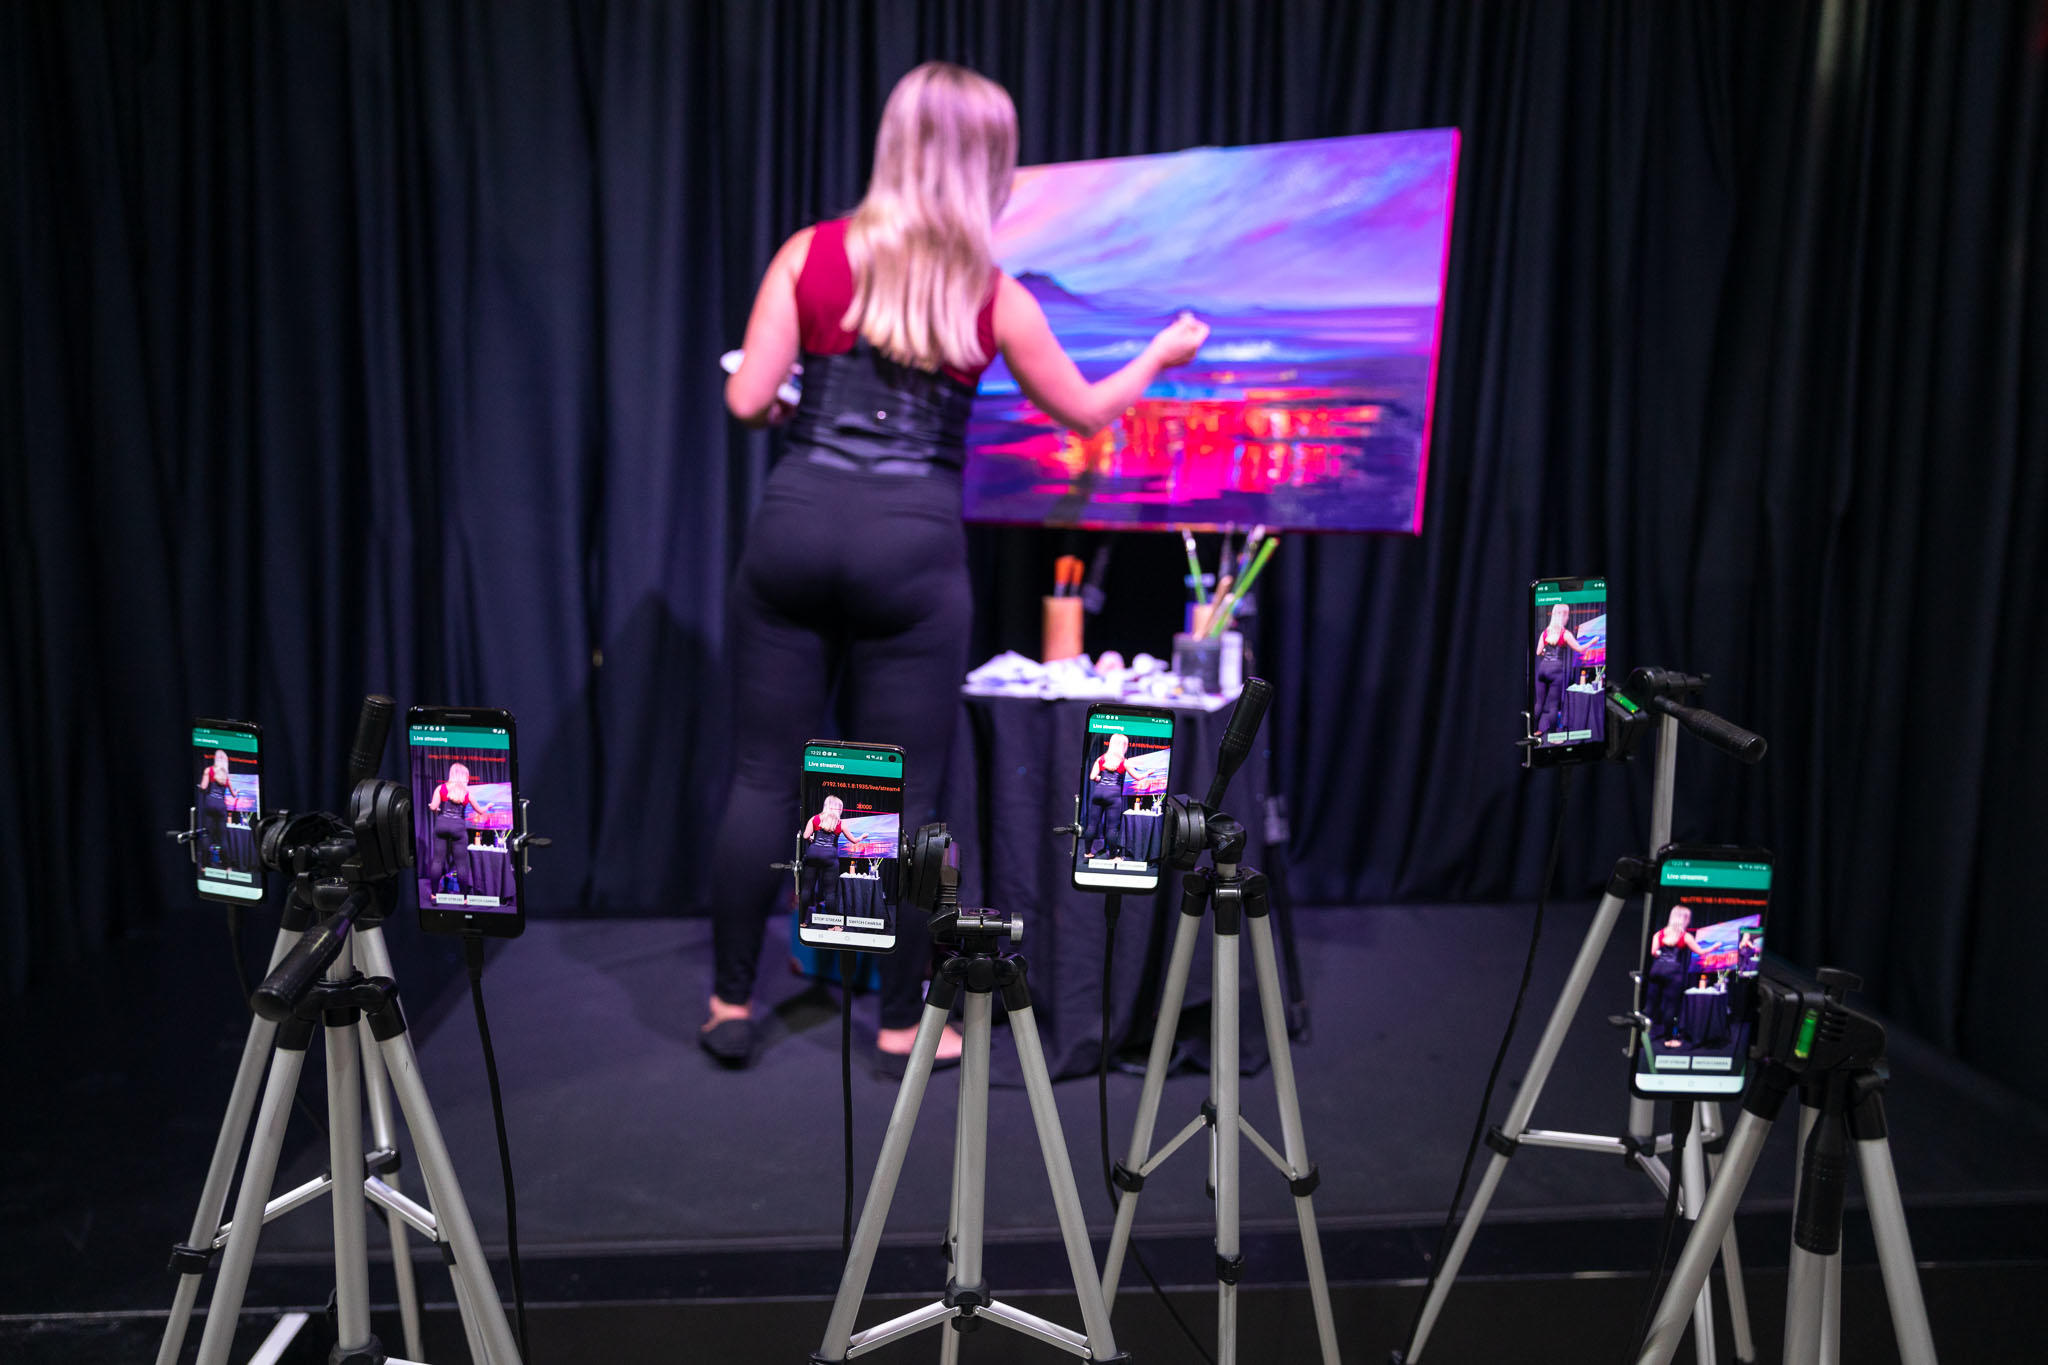 Qualcomm demonstrated coming improvements to Wi-Fi upload speeds by live-streaming a painter with 10 mobile phones.